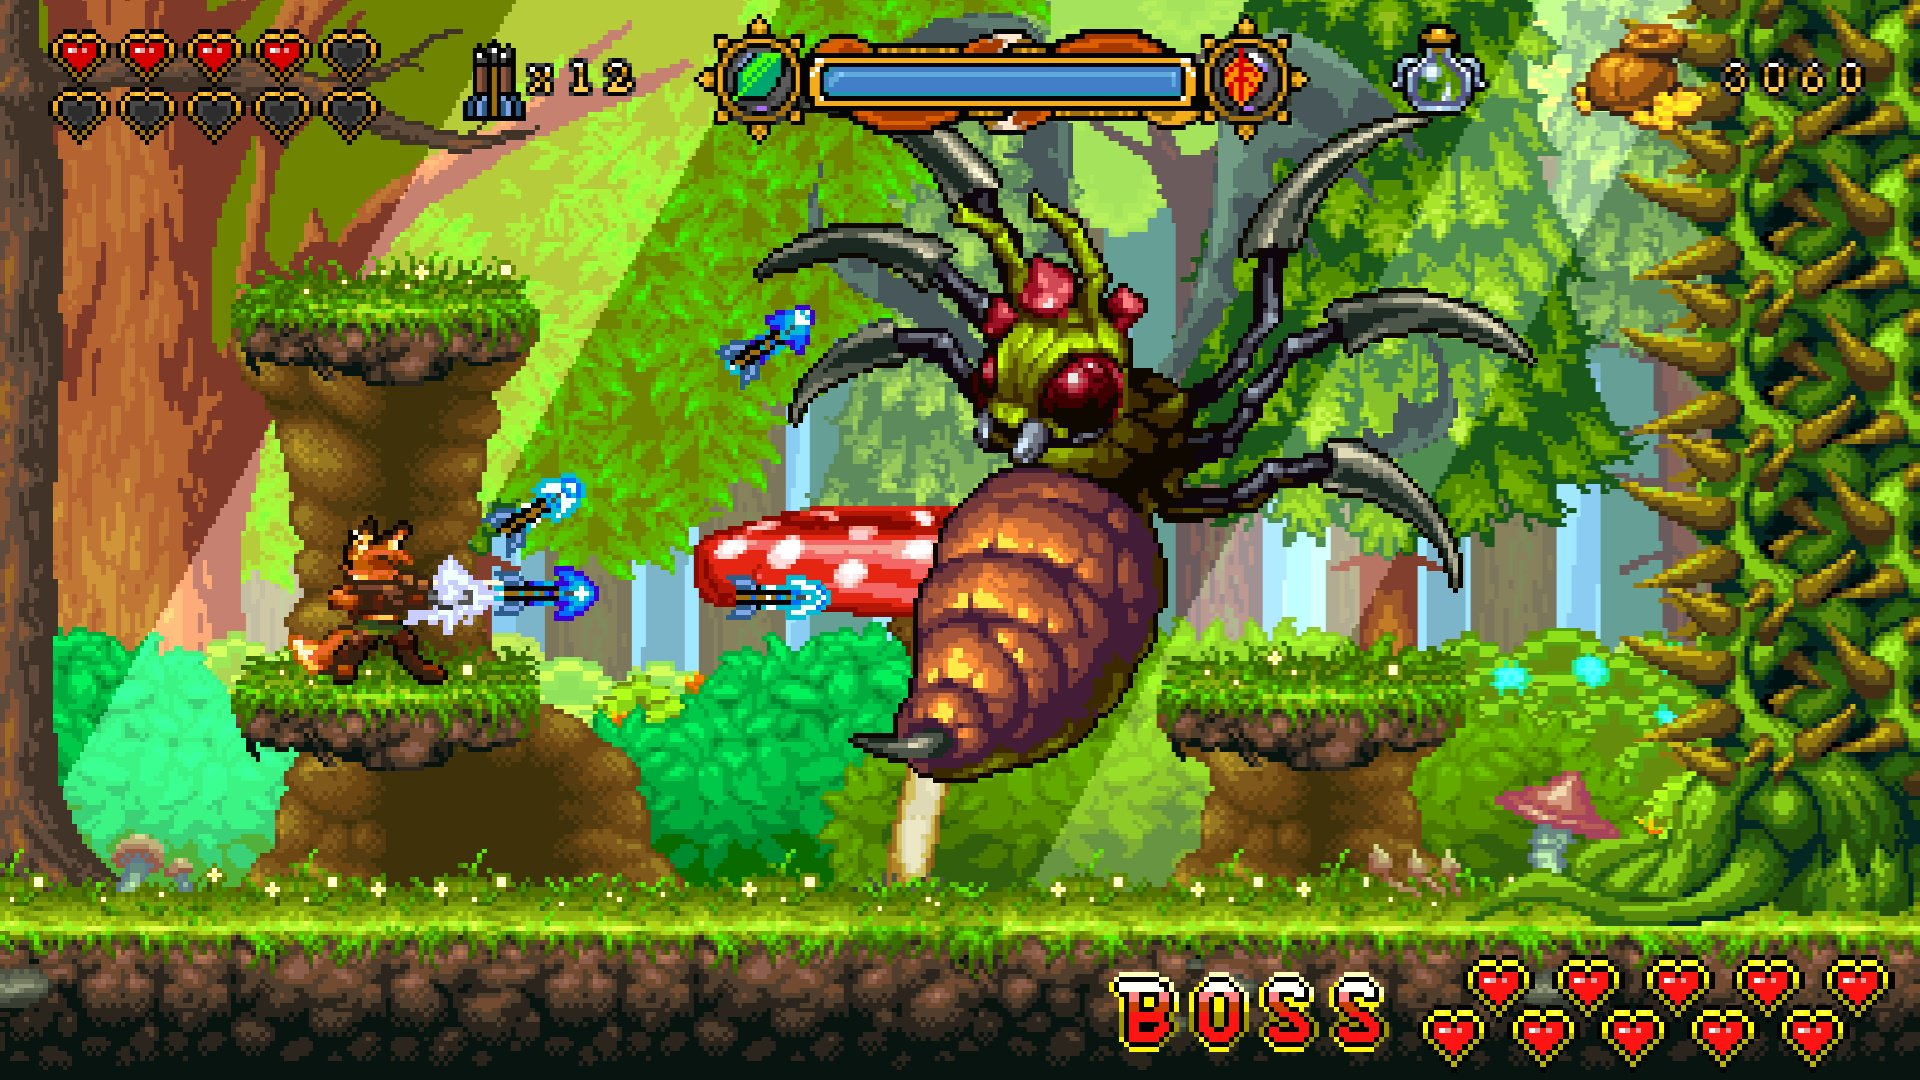 Fox n Forests scores a limited physical edition for Switch and PS4 screenshot